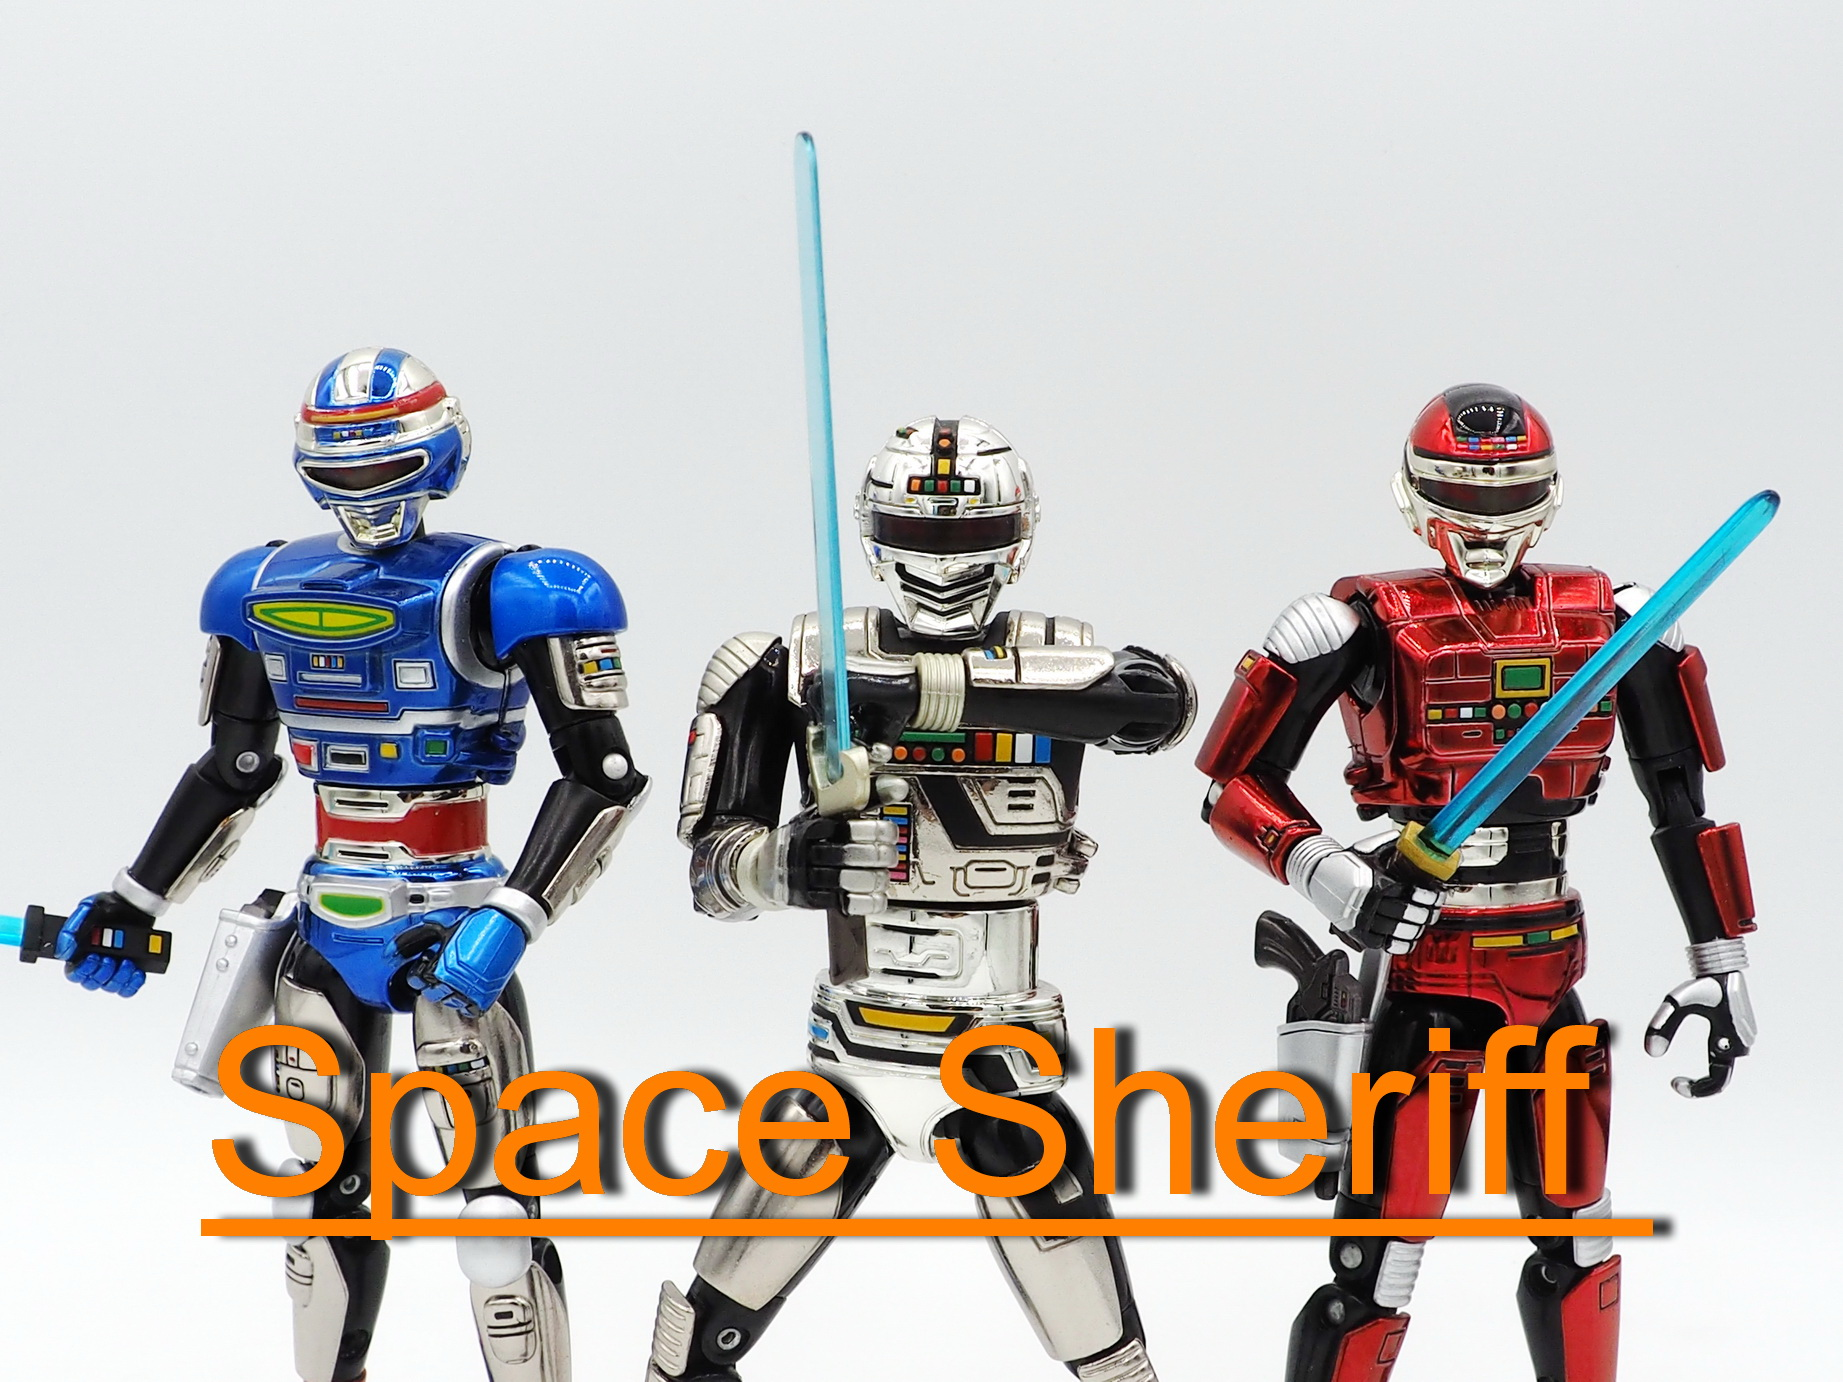 space sheriff